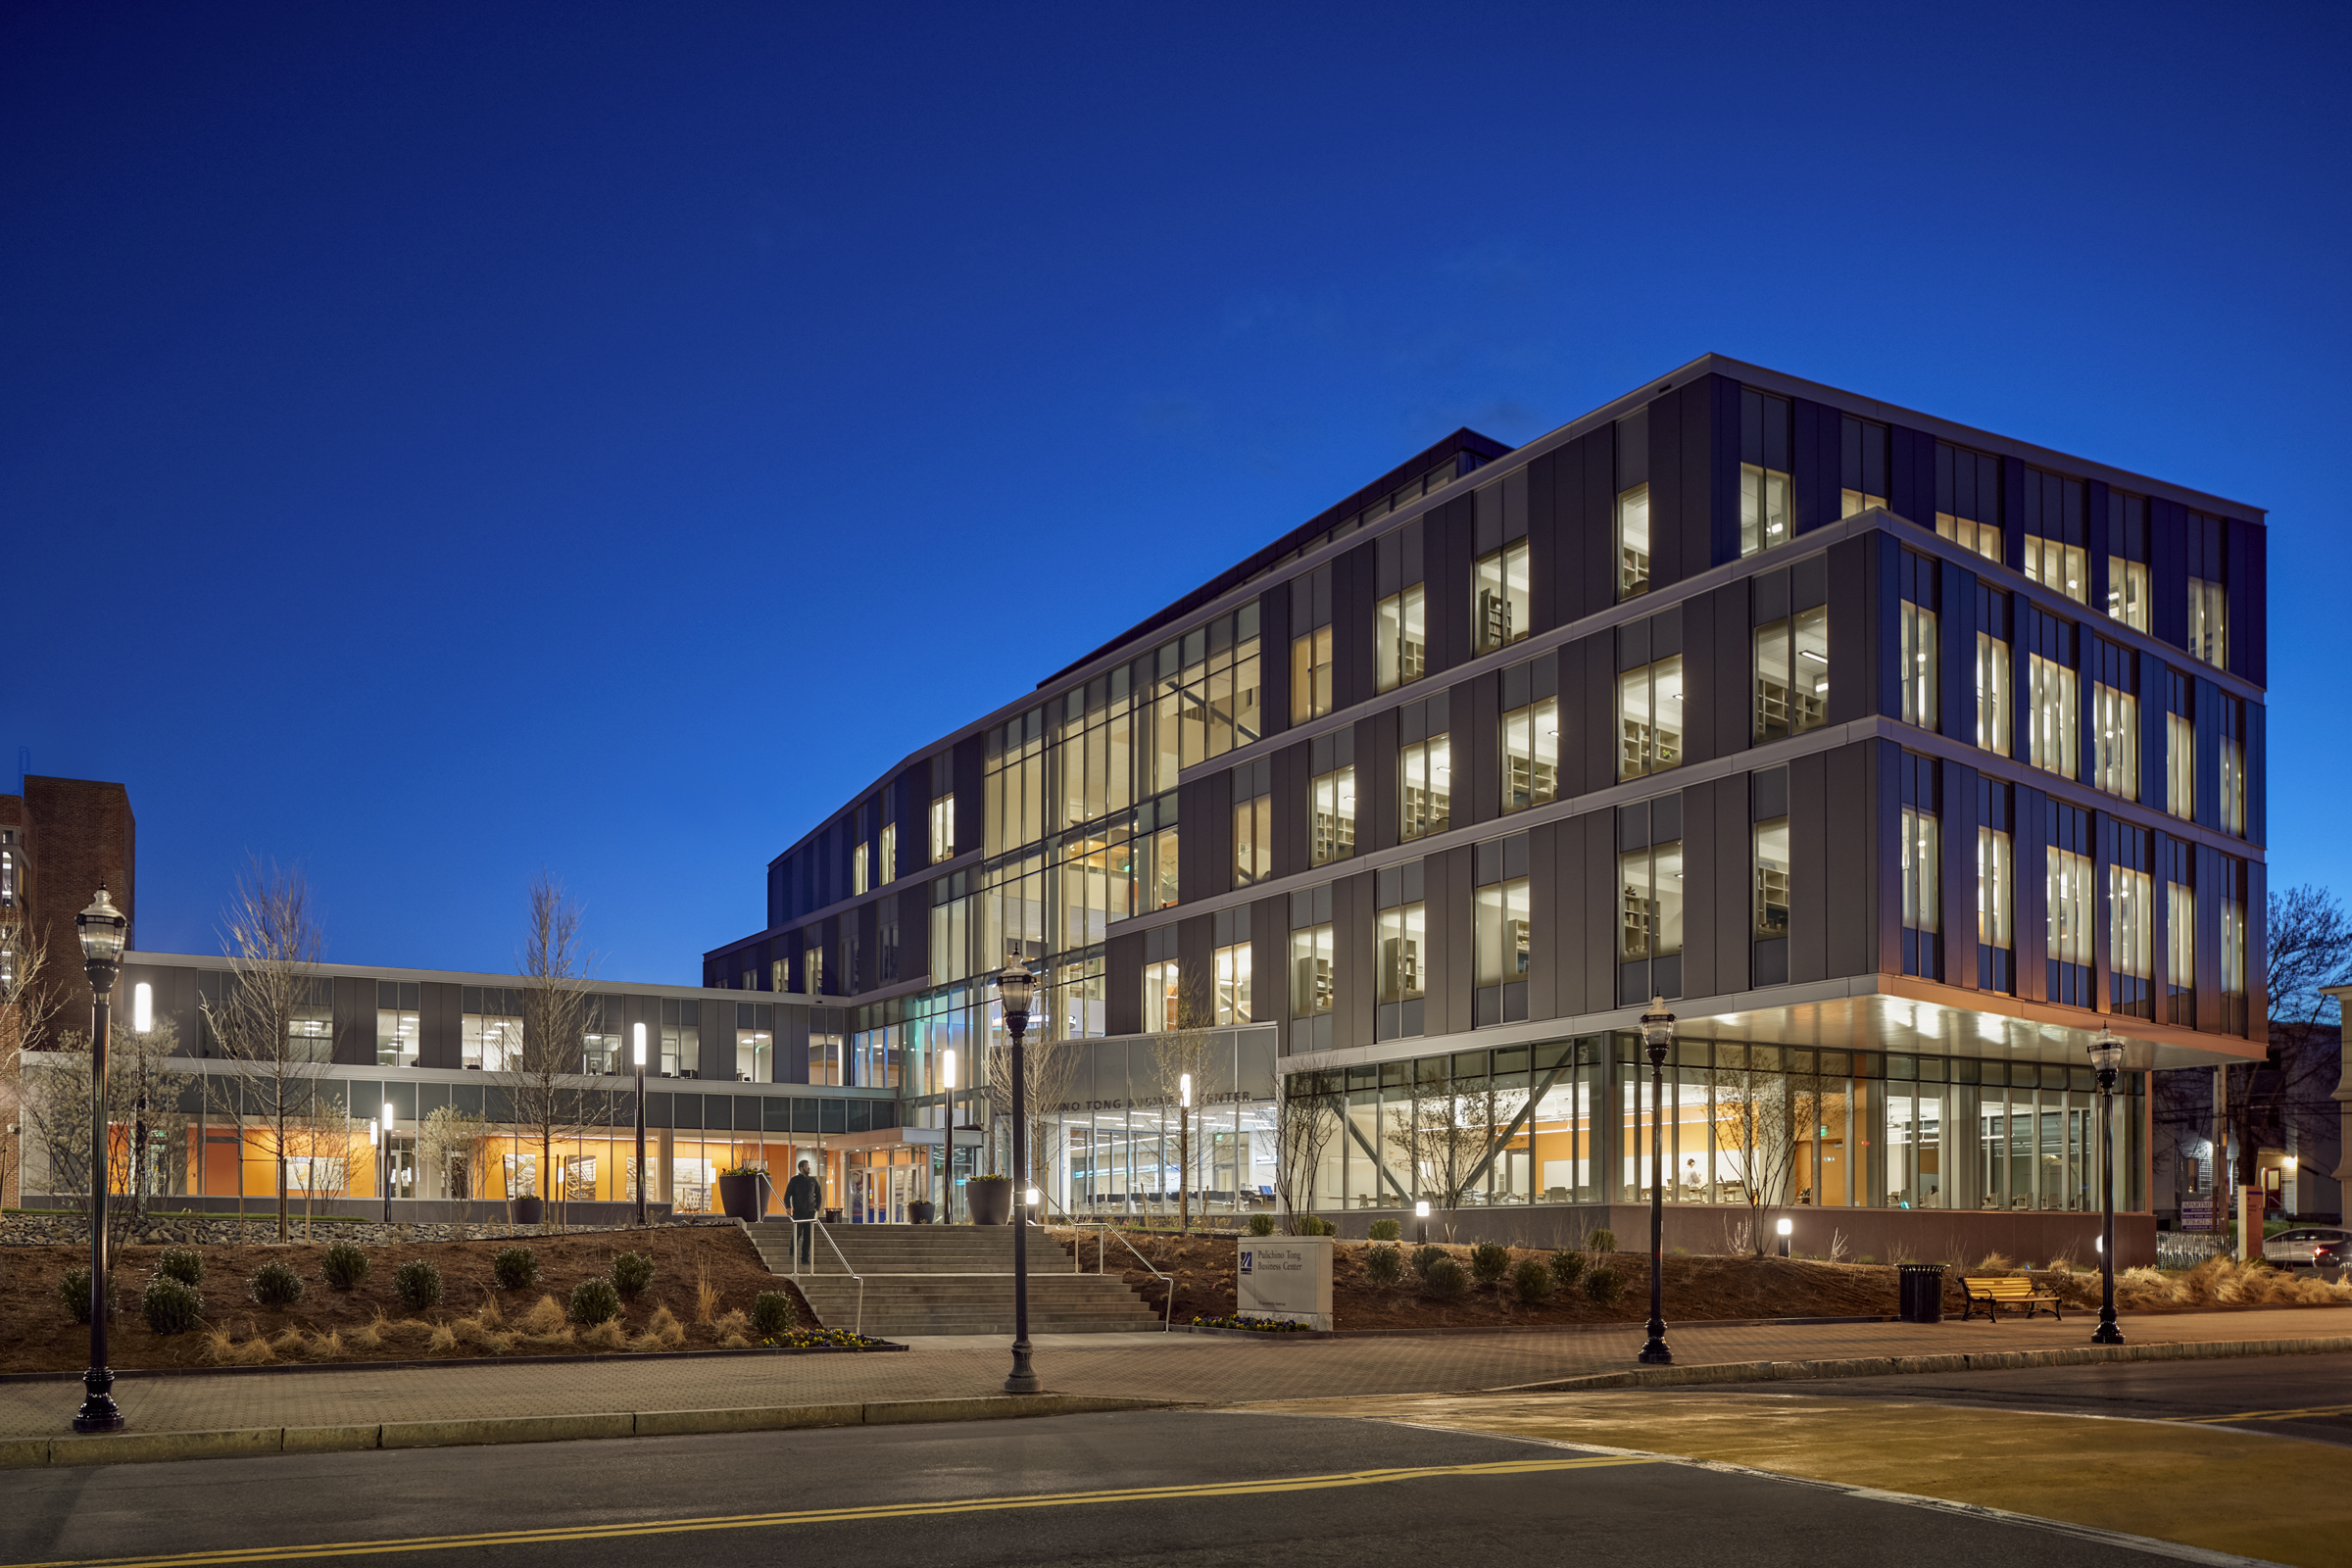 University Of Massachusetts Lowell >> Pulichino Tong Business Center, University of Massachusetts Lowell | Architect Magazine ...